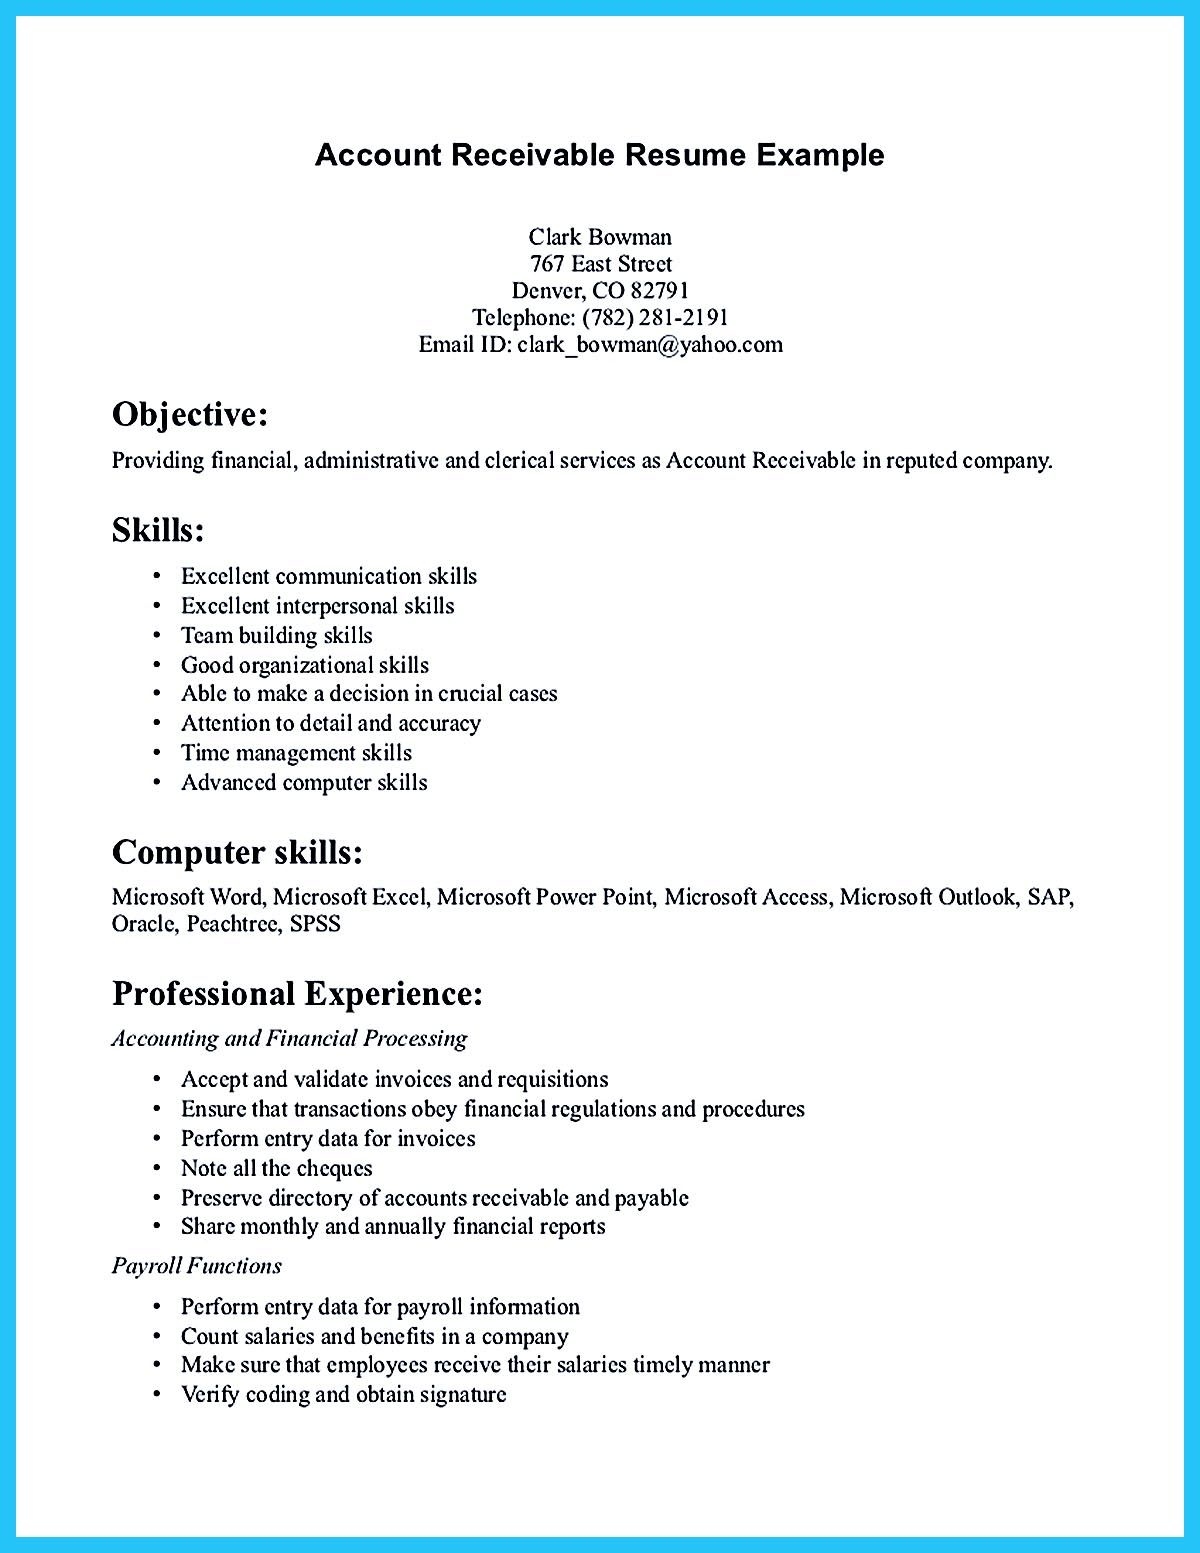 Account Payable Resume Accounts Receivable Resume Presents Both Skills And Also The